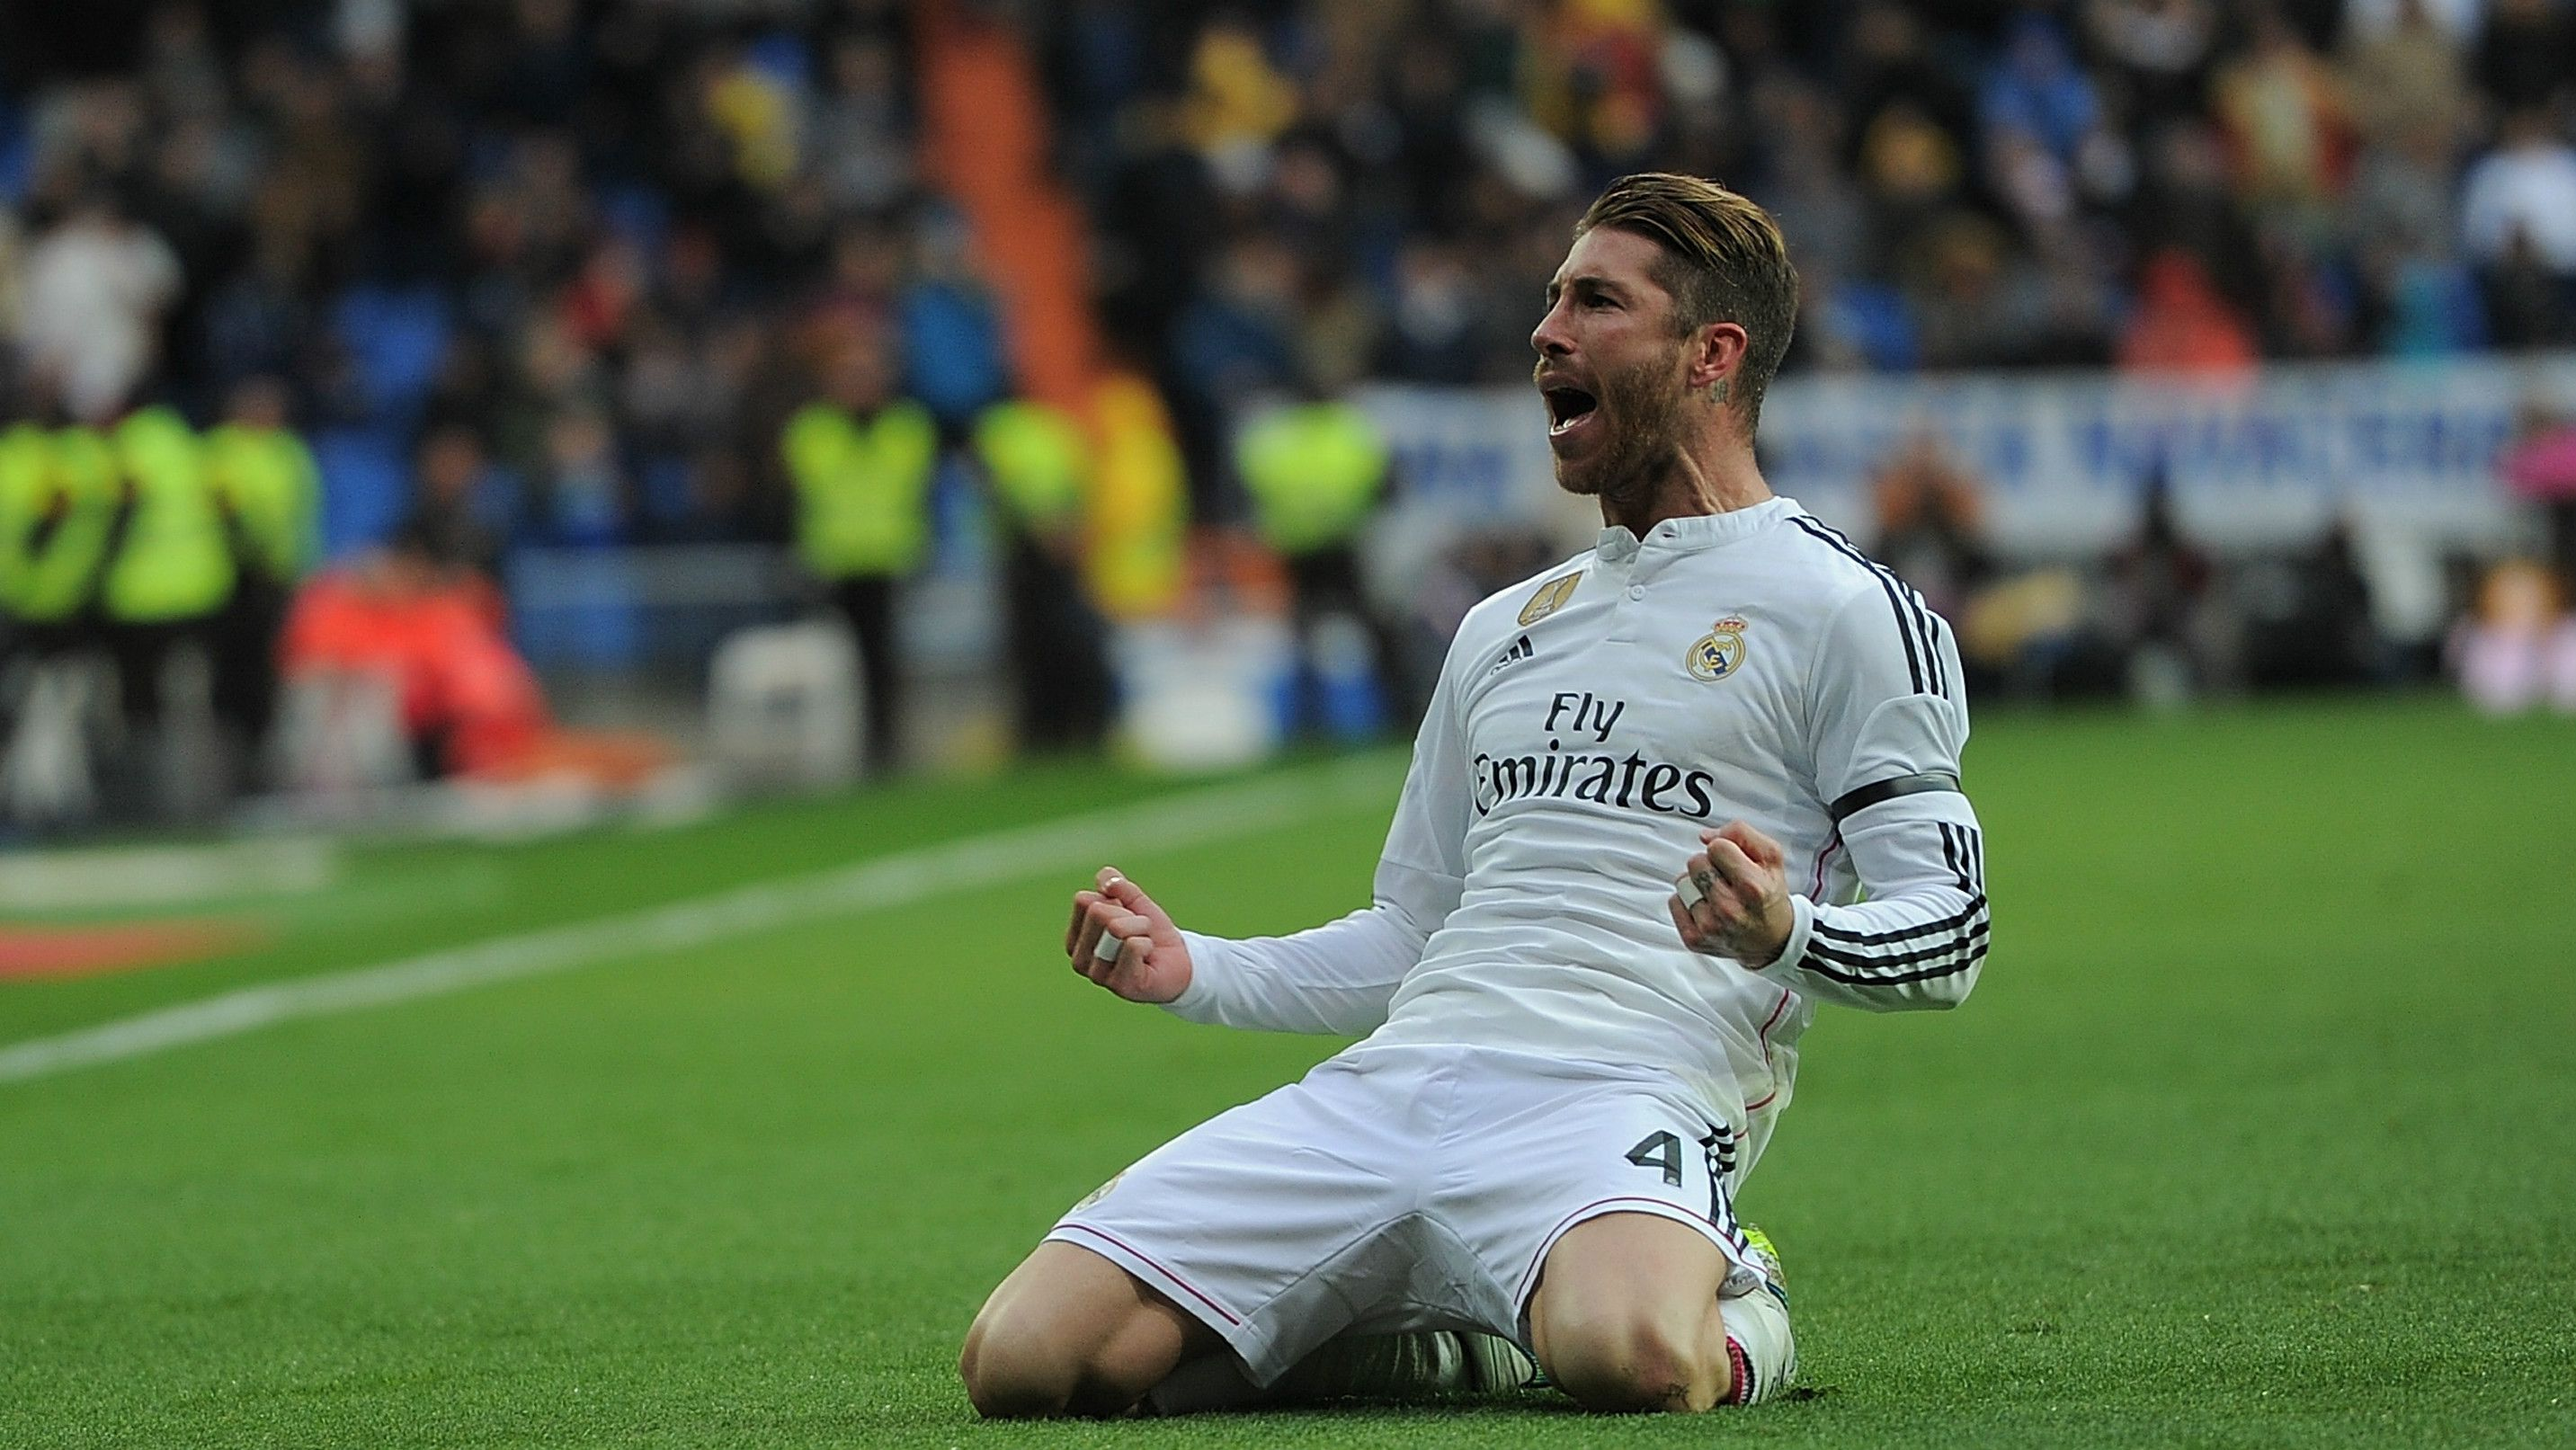 sergio ramos hd images - photo #19